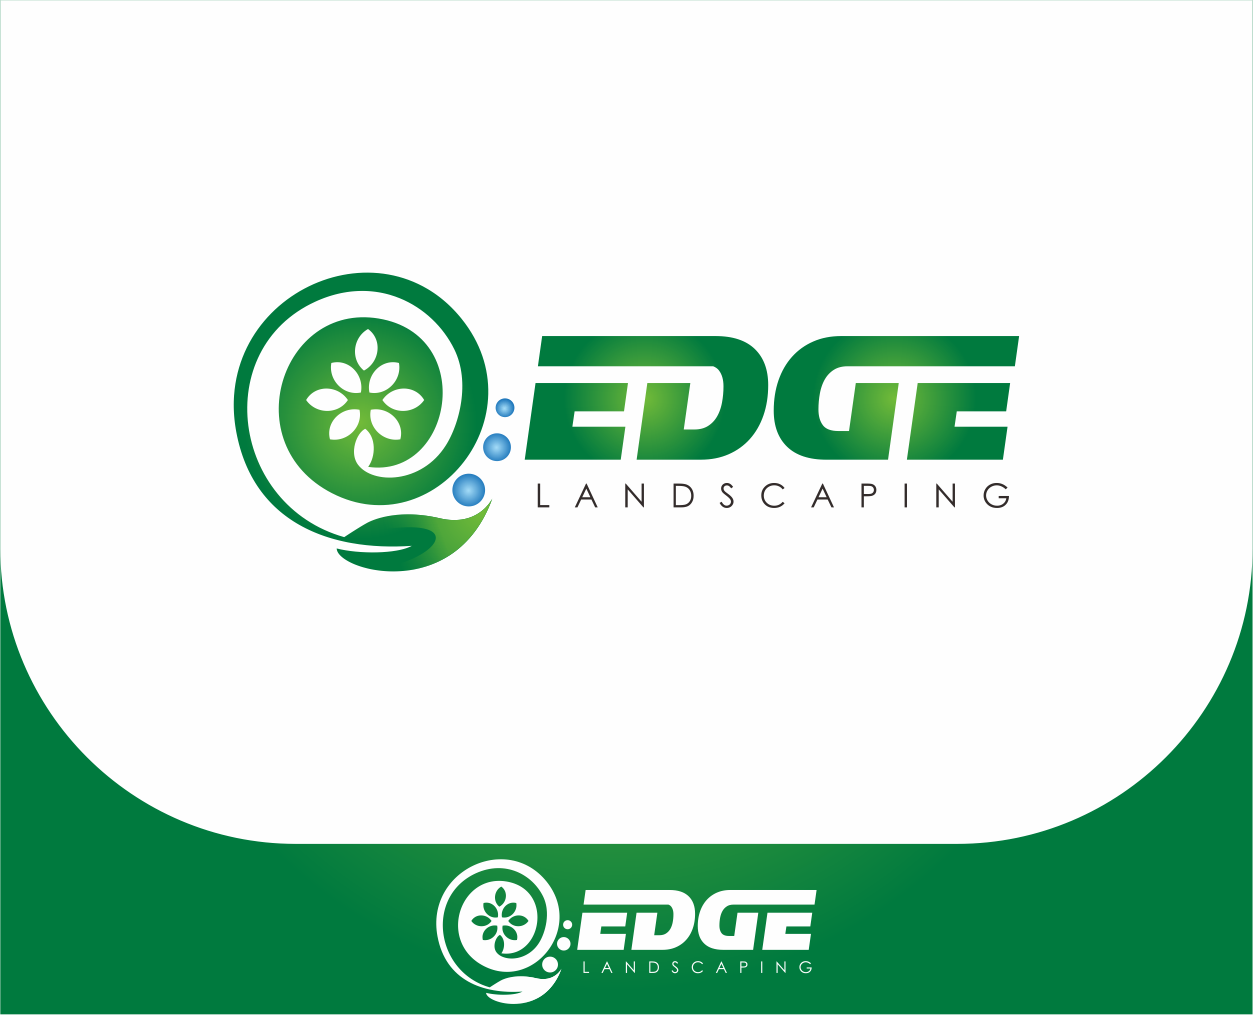 Logo Design by Armada Jamaluddin - Entry No. 221 in the Logo Design Contest Inspiring Logo Design for Edge Landscaping.